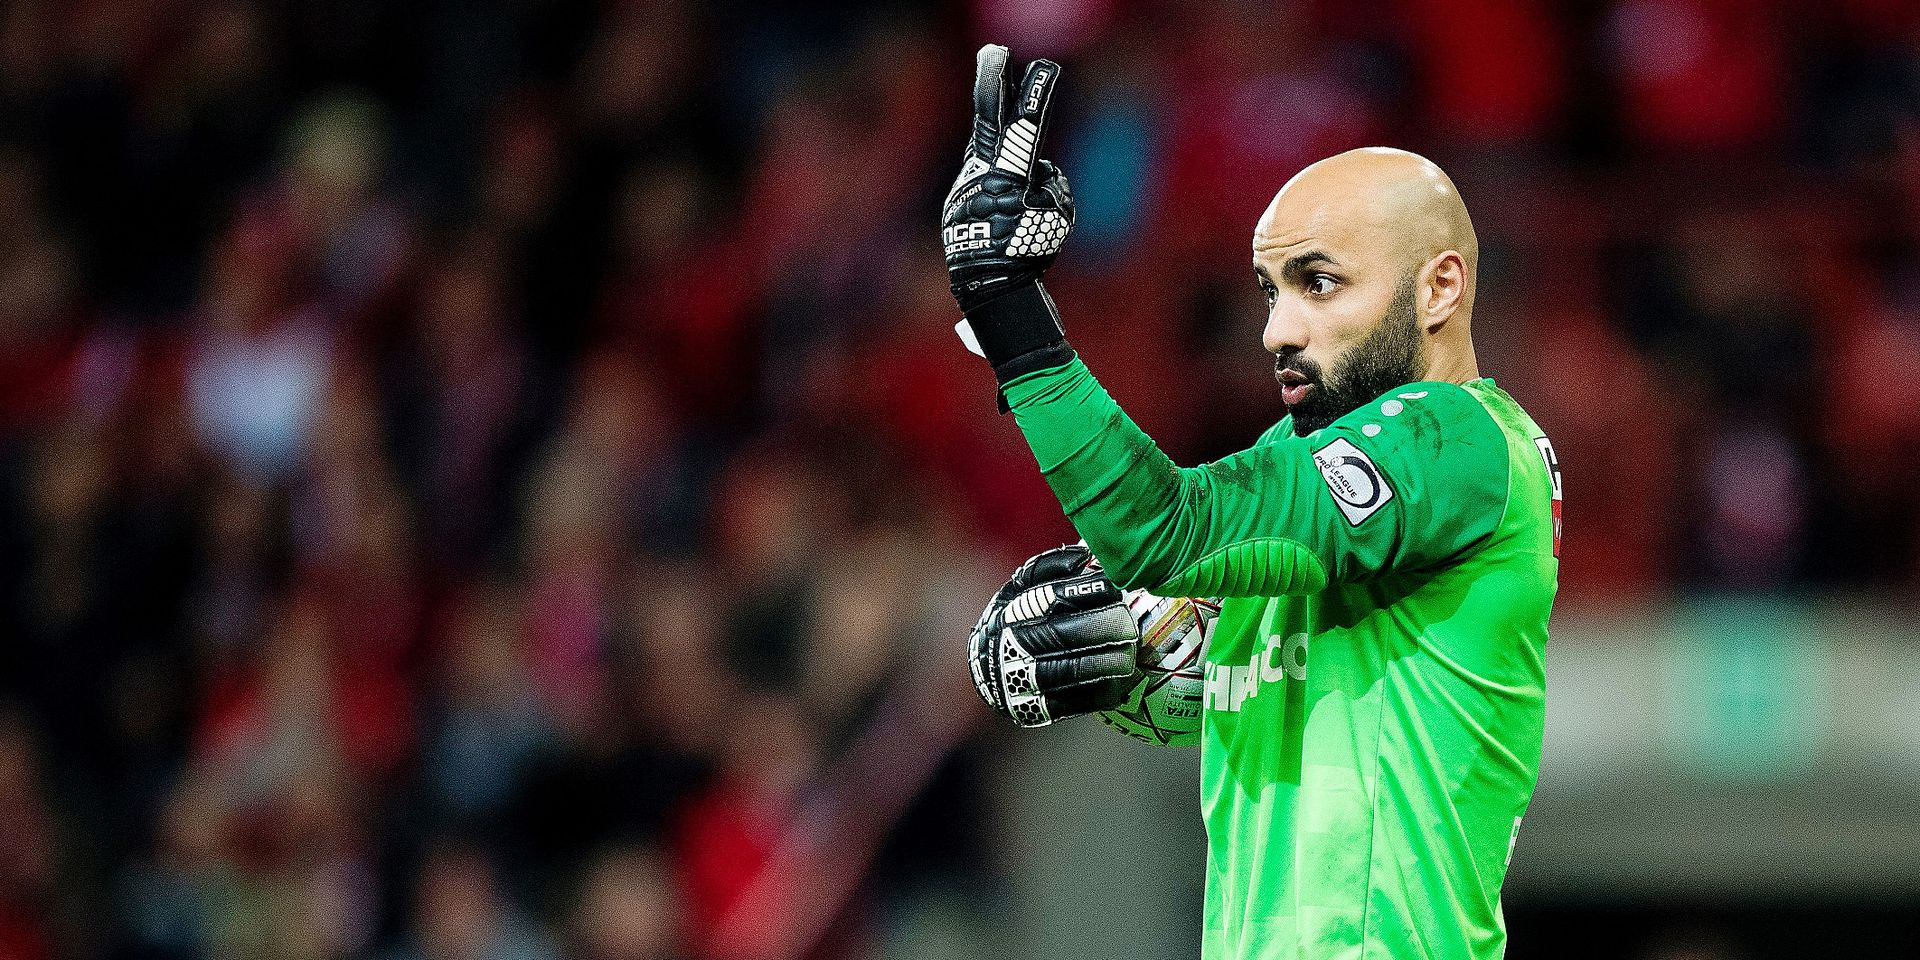 Antwerp's goalkeeper Sinan Bolat reacts during a soccer game between Standard de Liege and Royal Antwerp FC, Friday 29 March 2019 in Liege, on day 1 (out of 10) of the Play-off 1 of the 'Jupiler Pro League' Belgian soccer championship. BELGA PHOTO JASPER JACOBS